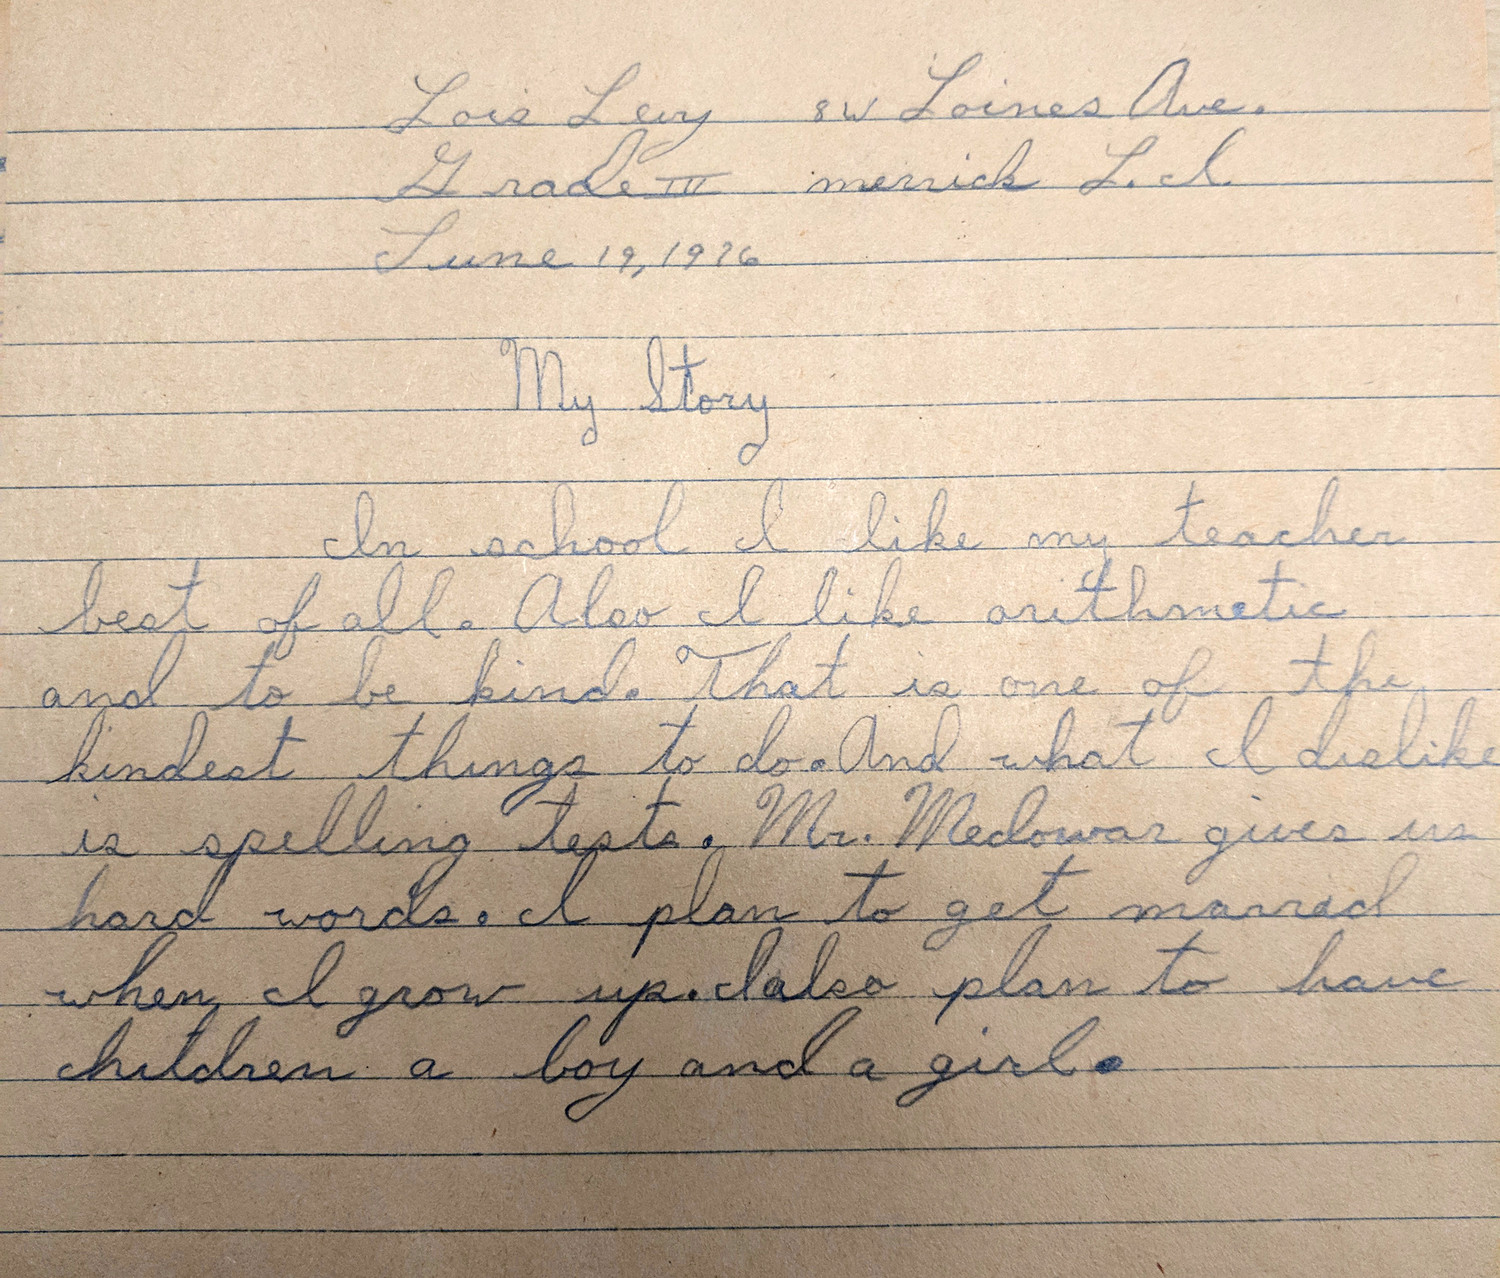 A letter in the time capsule from Lois Levy, a third-grader from Loines Avenue in Merrick, to be opened on June 19, 1976, reads: In school, I like my teacher best of all. Also, I like arithmetic and to be kind. That is one of the kindest things to do. And what I dislike is spelling tests. Mr. Medowar gives us hard words. I plan to get married when I grow up. I also plan to have children — a boy and a girl.